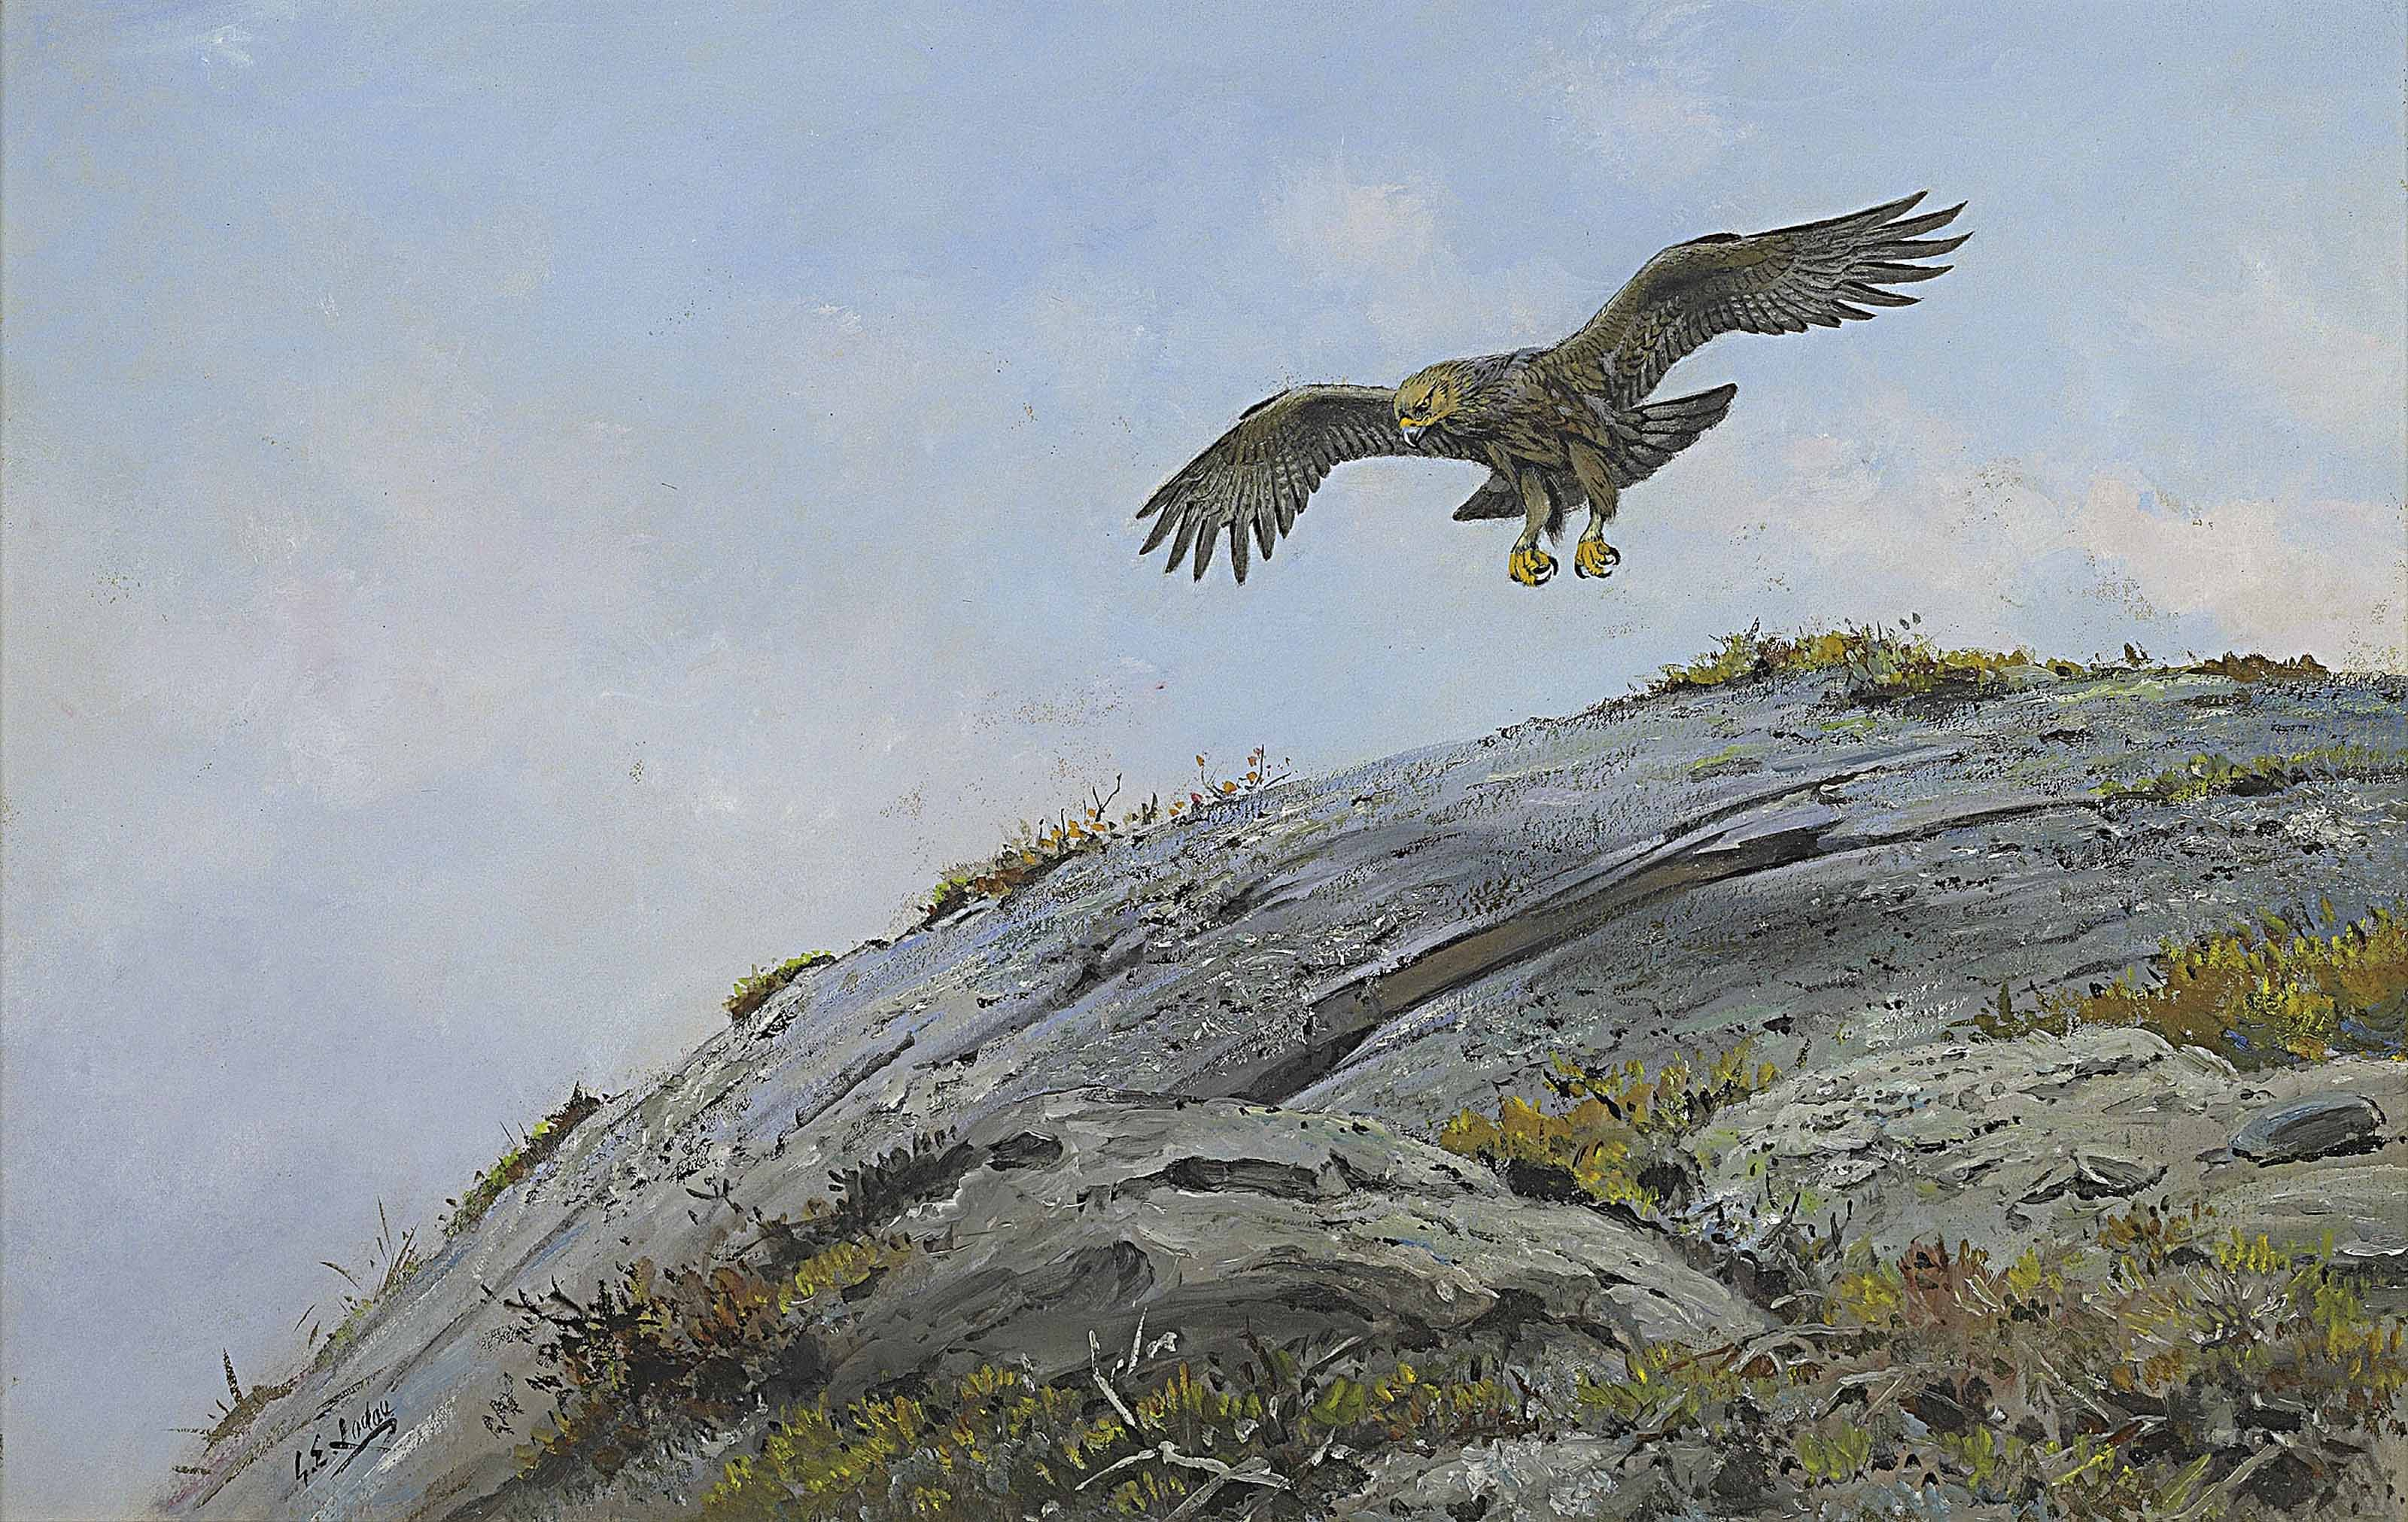 A golden eagle hovering over the summit of a crag